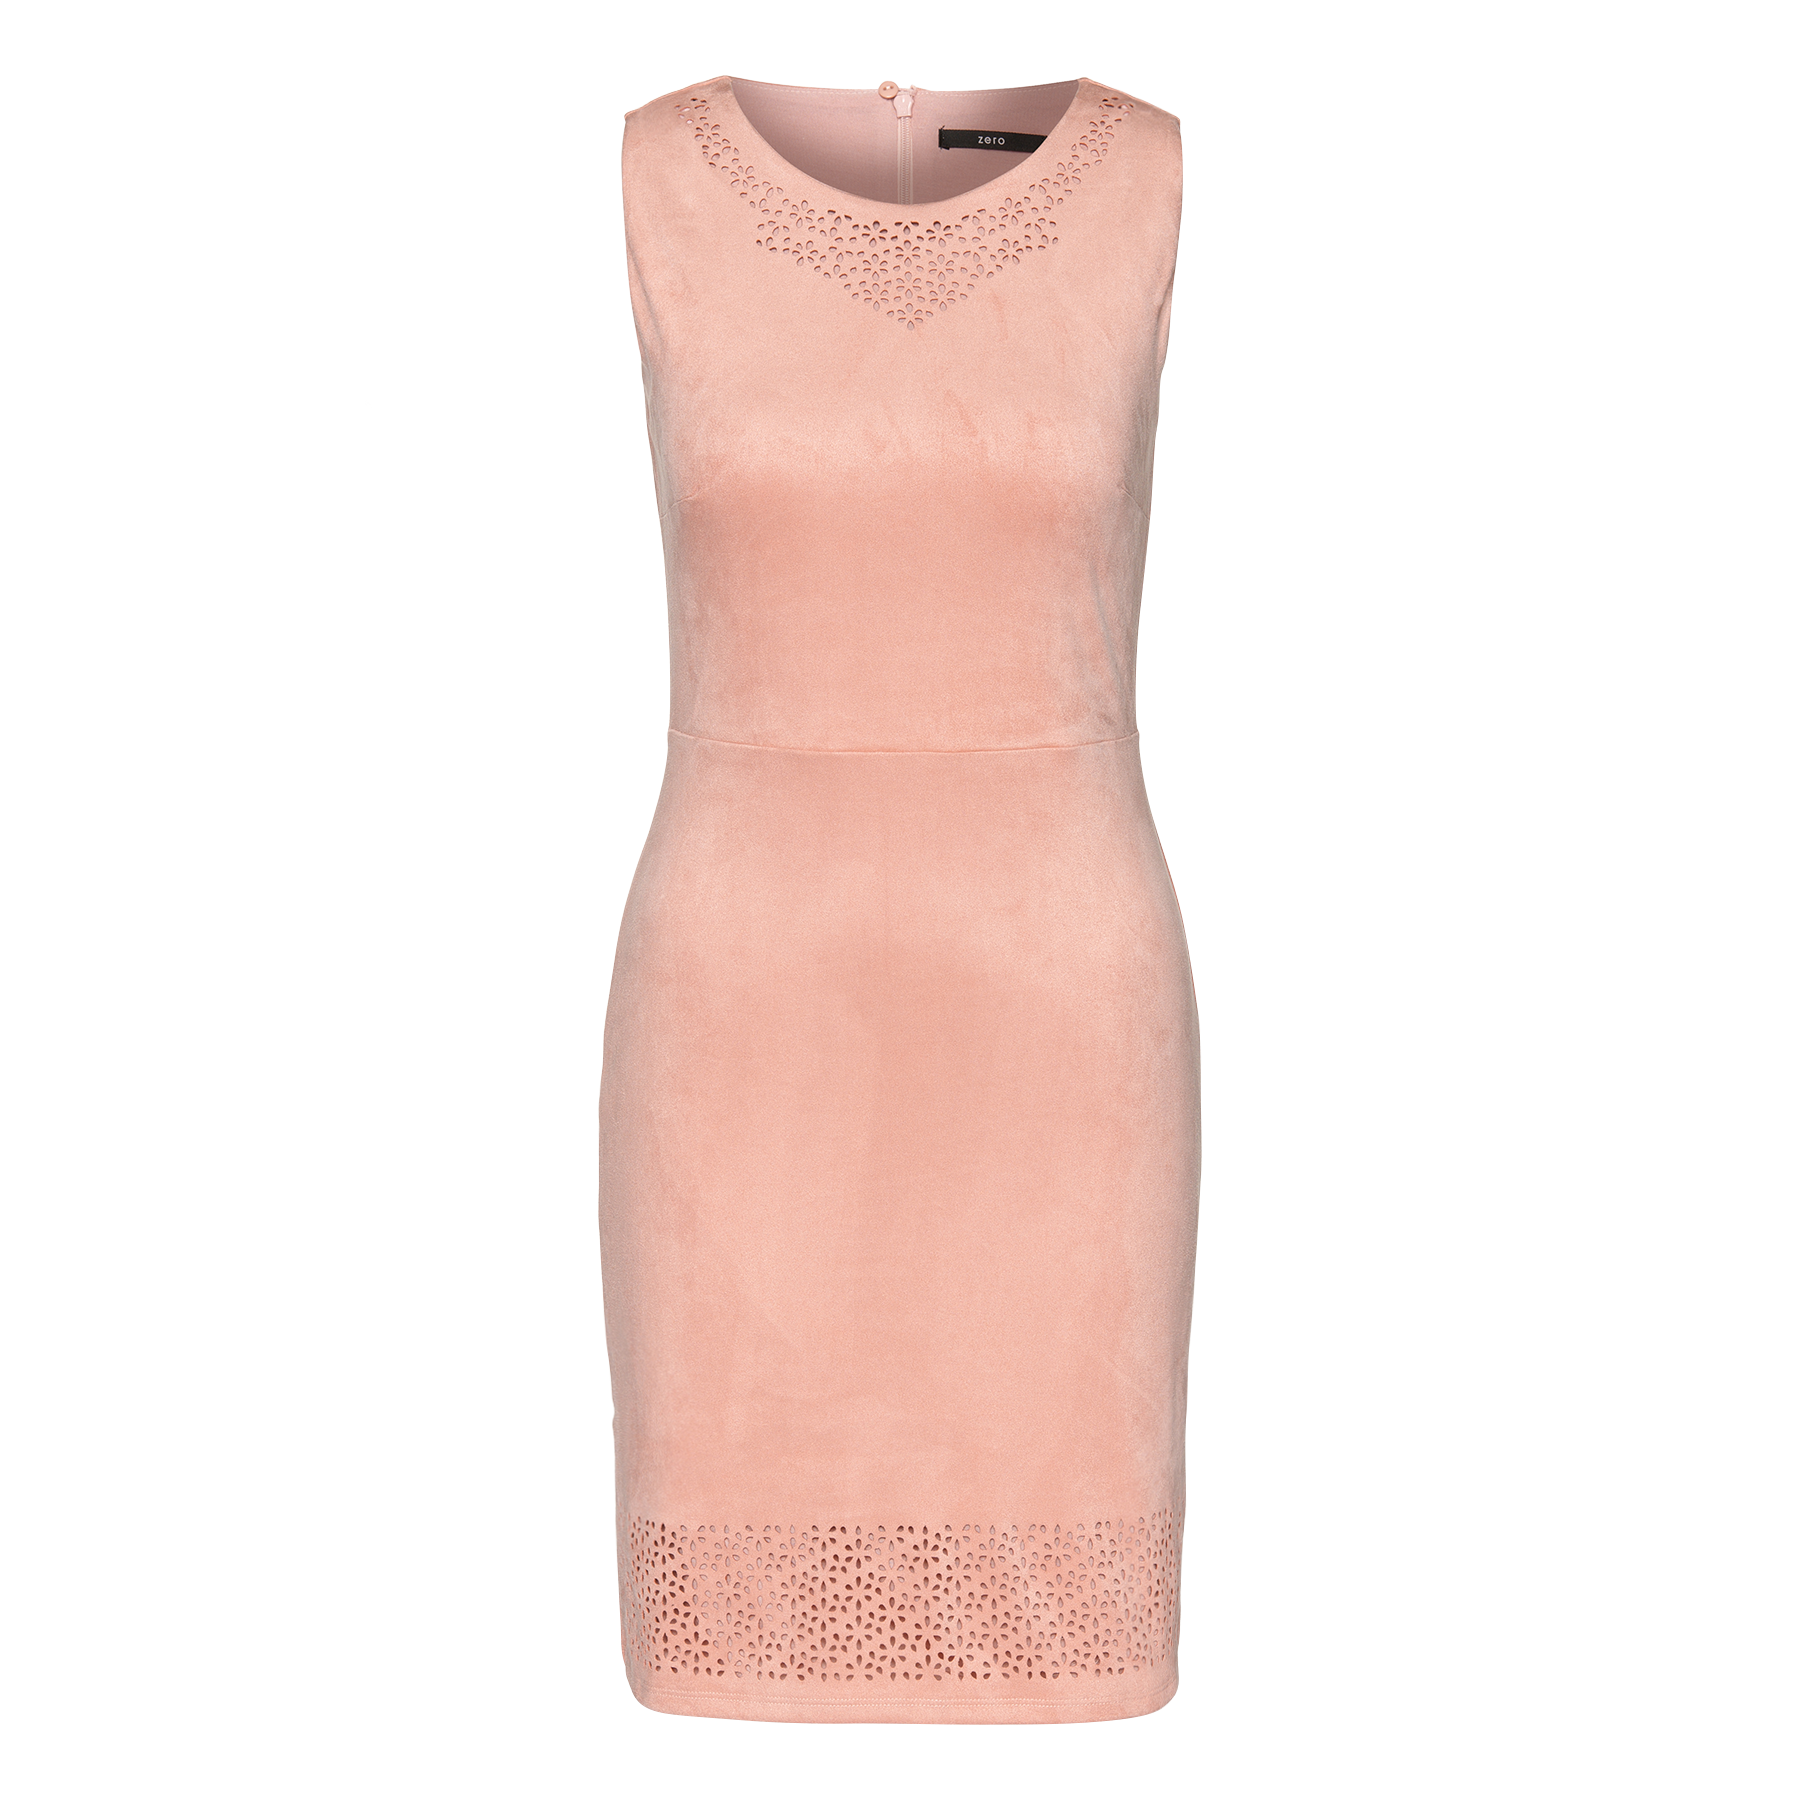 Kleid in Veloursleder-Optik rose parfait